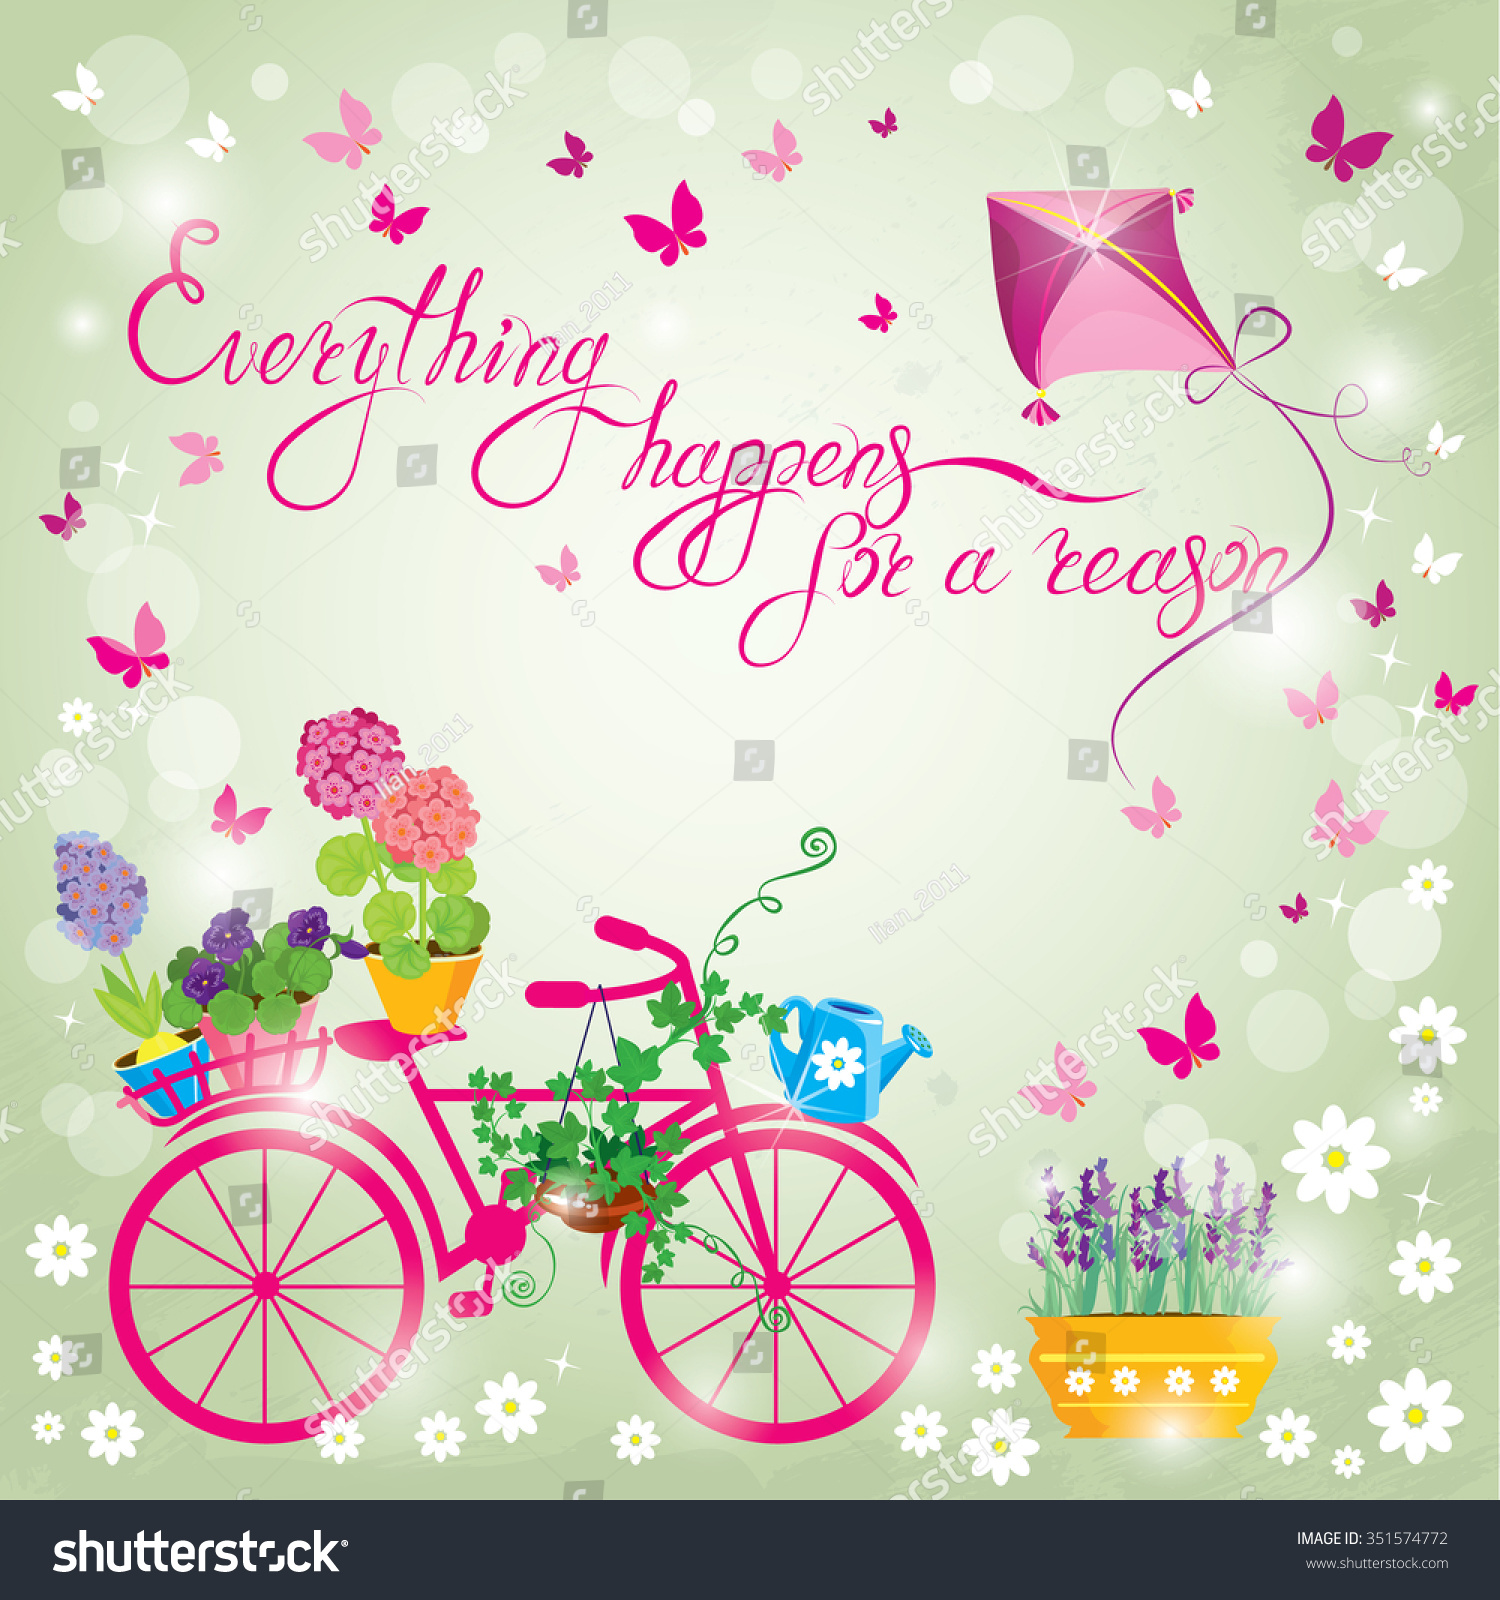 Image Flowers Pots Bicycle On Sky Illustration 351574772 – Birthday Invitation Background